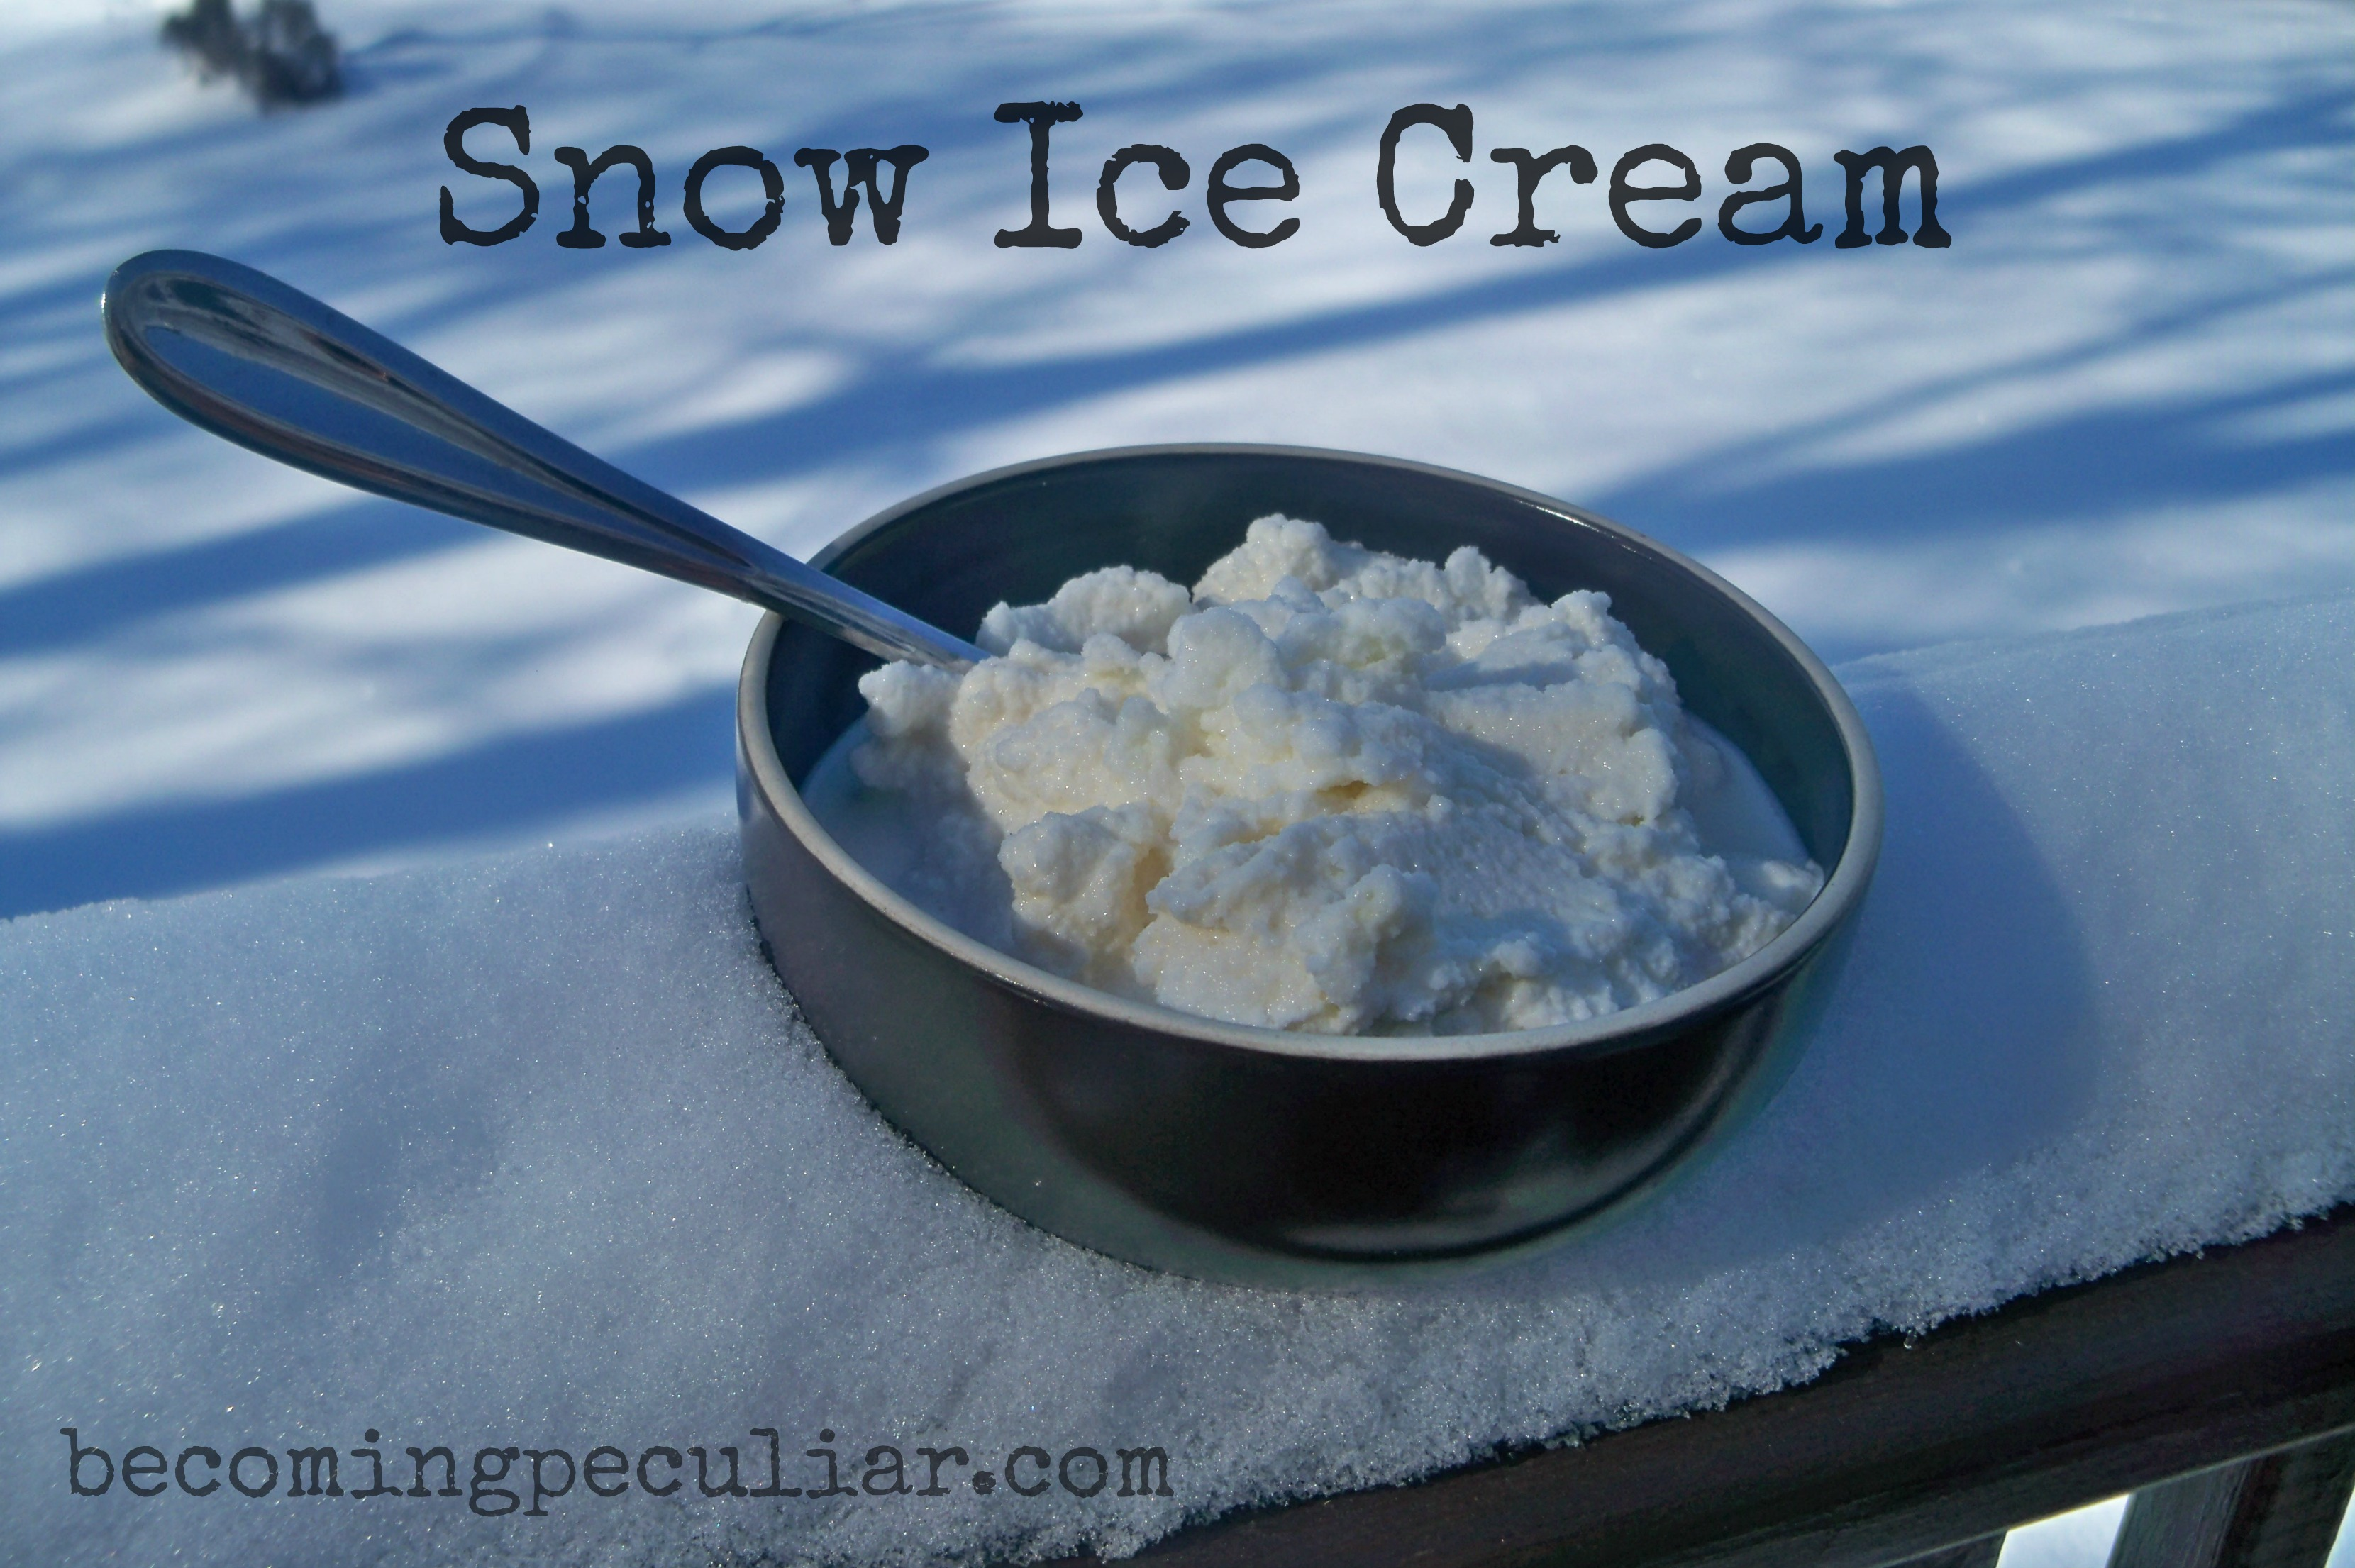 How to make snow ice cream like a mennonite ccuart Gallery